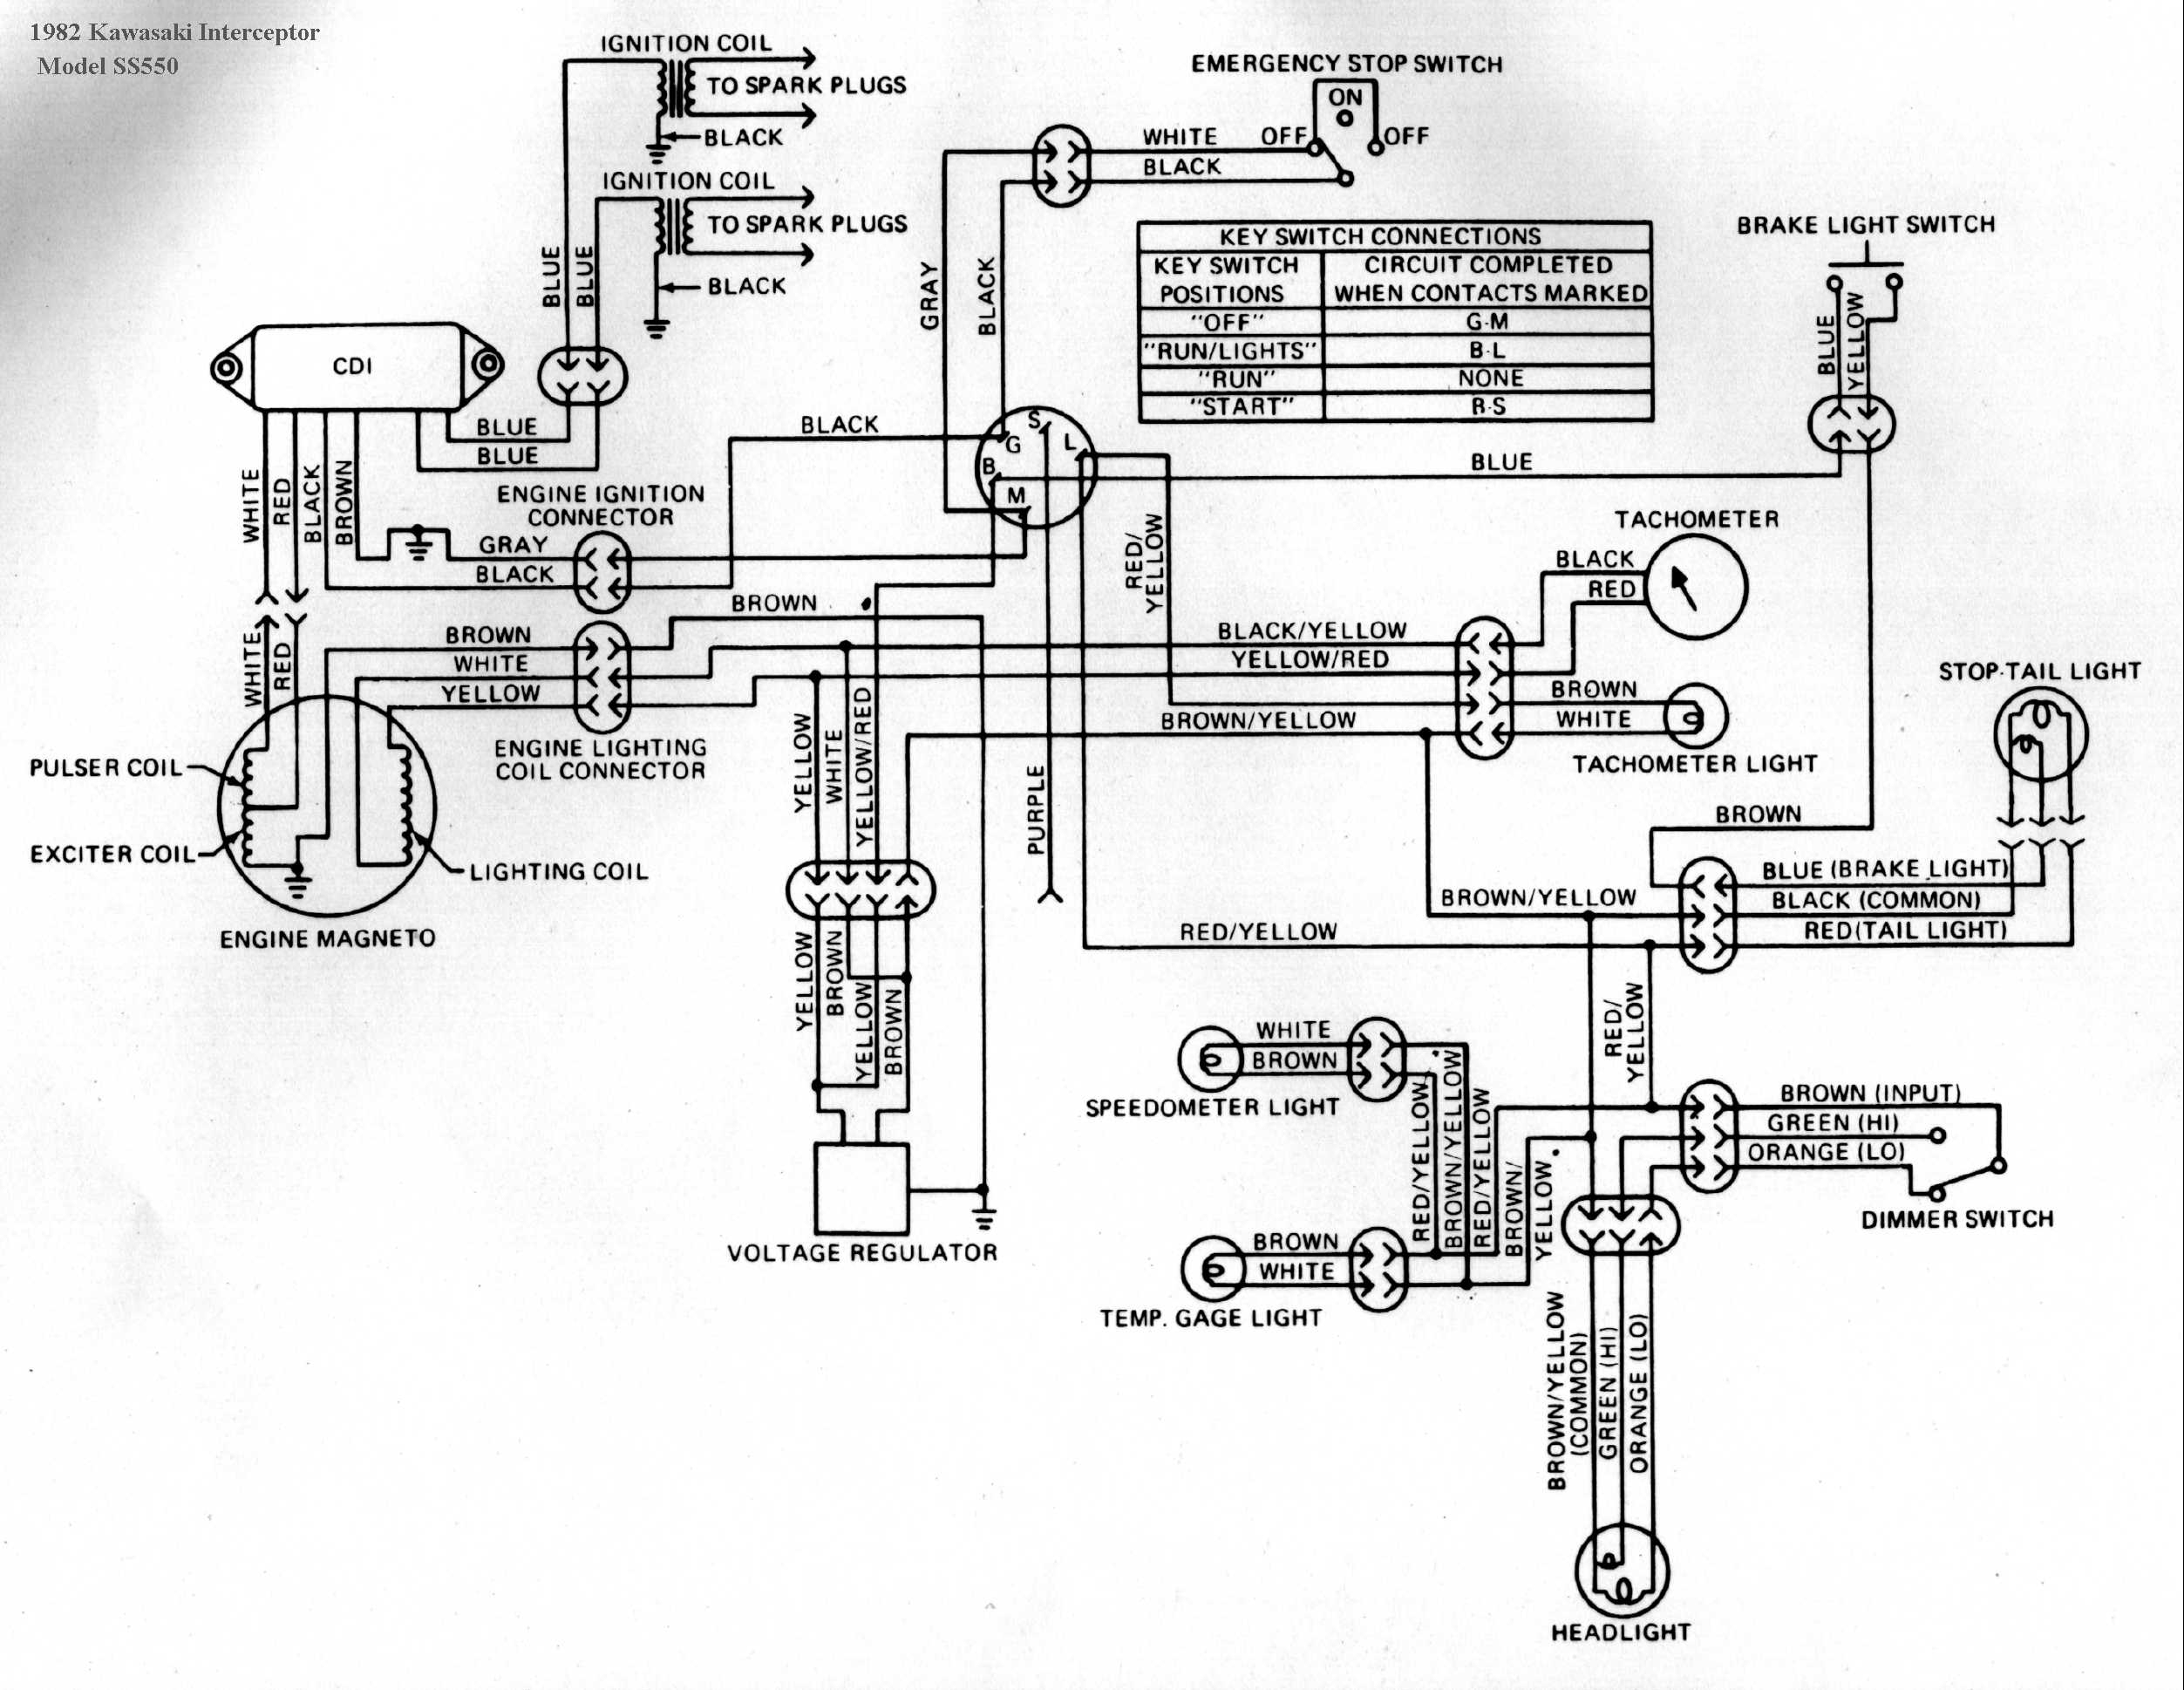 Kawasaki Invader Wiring Diagram | Wiring Diagram - 220 Wiring Diagram